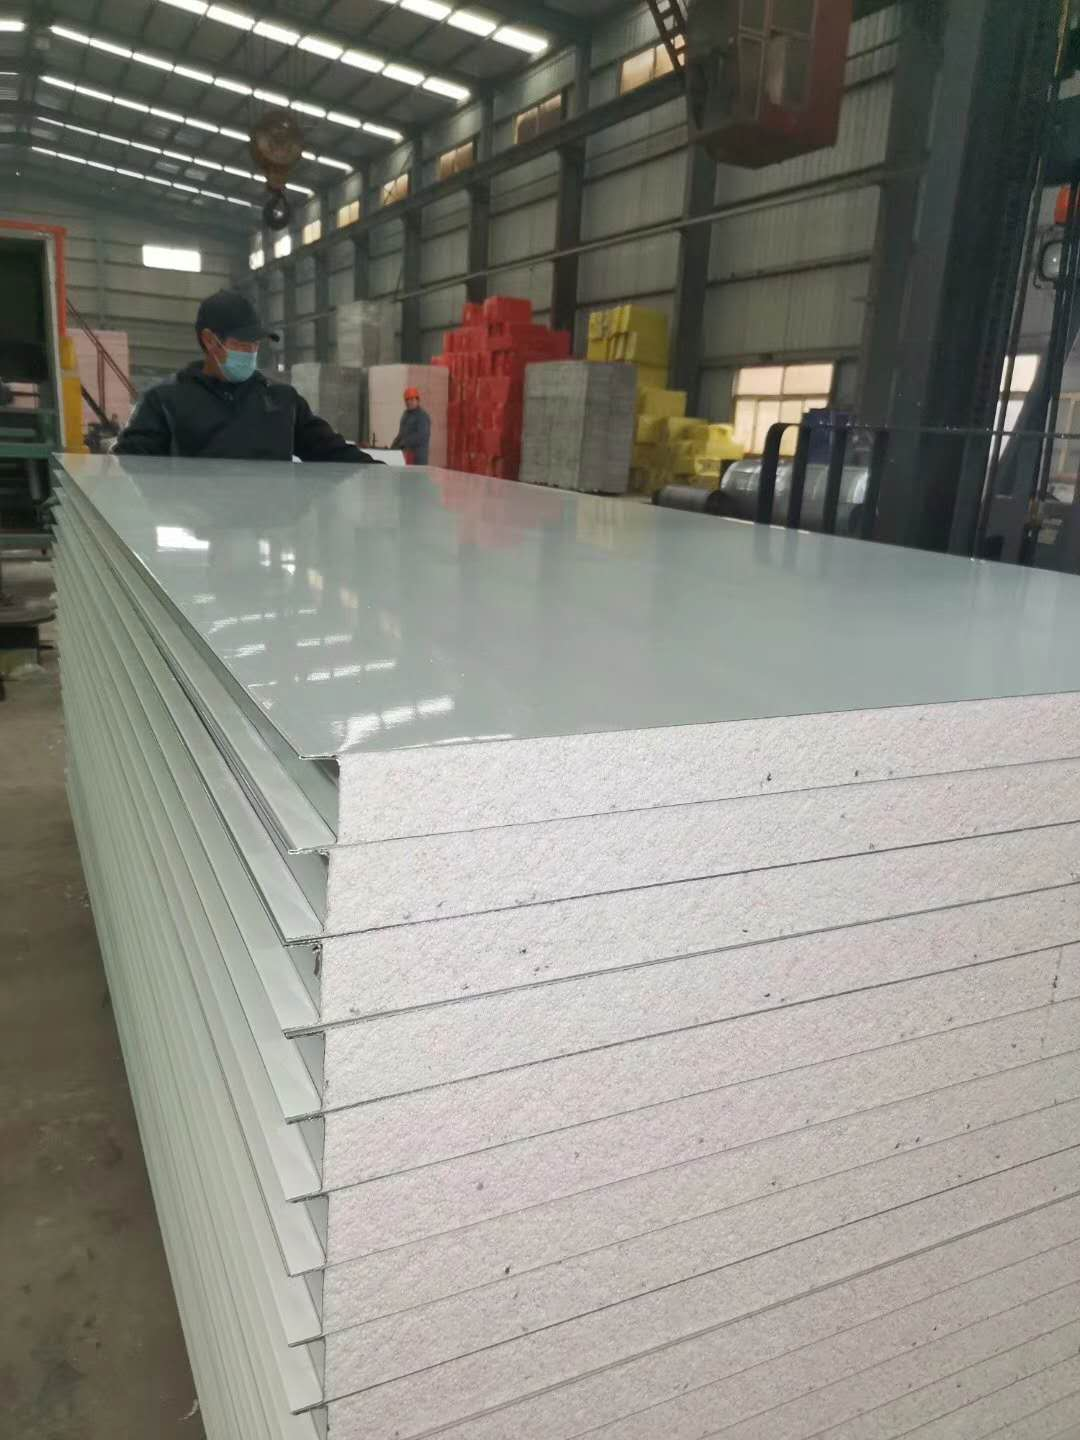 How to develop sandwich panels? What are the advantages?